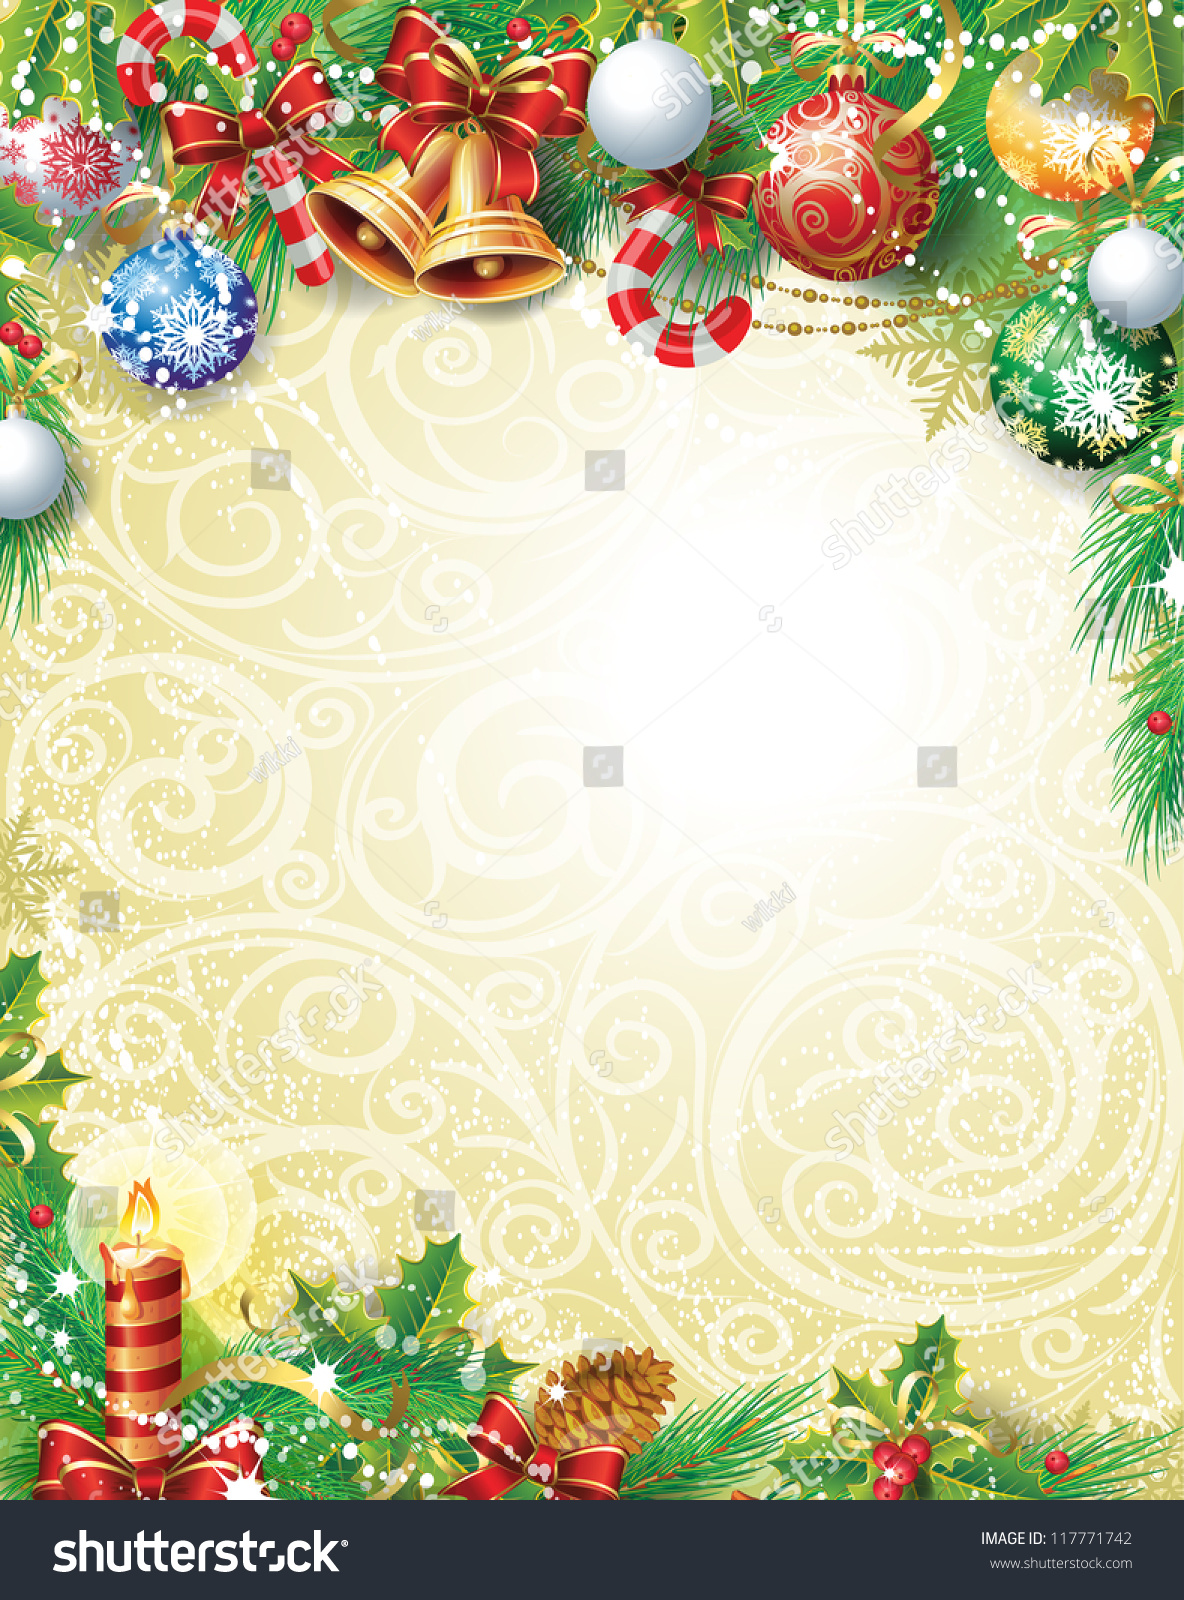 Vintage Christmas Background Stock Vector (Royalty Free) 117771742 ...